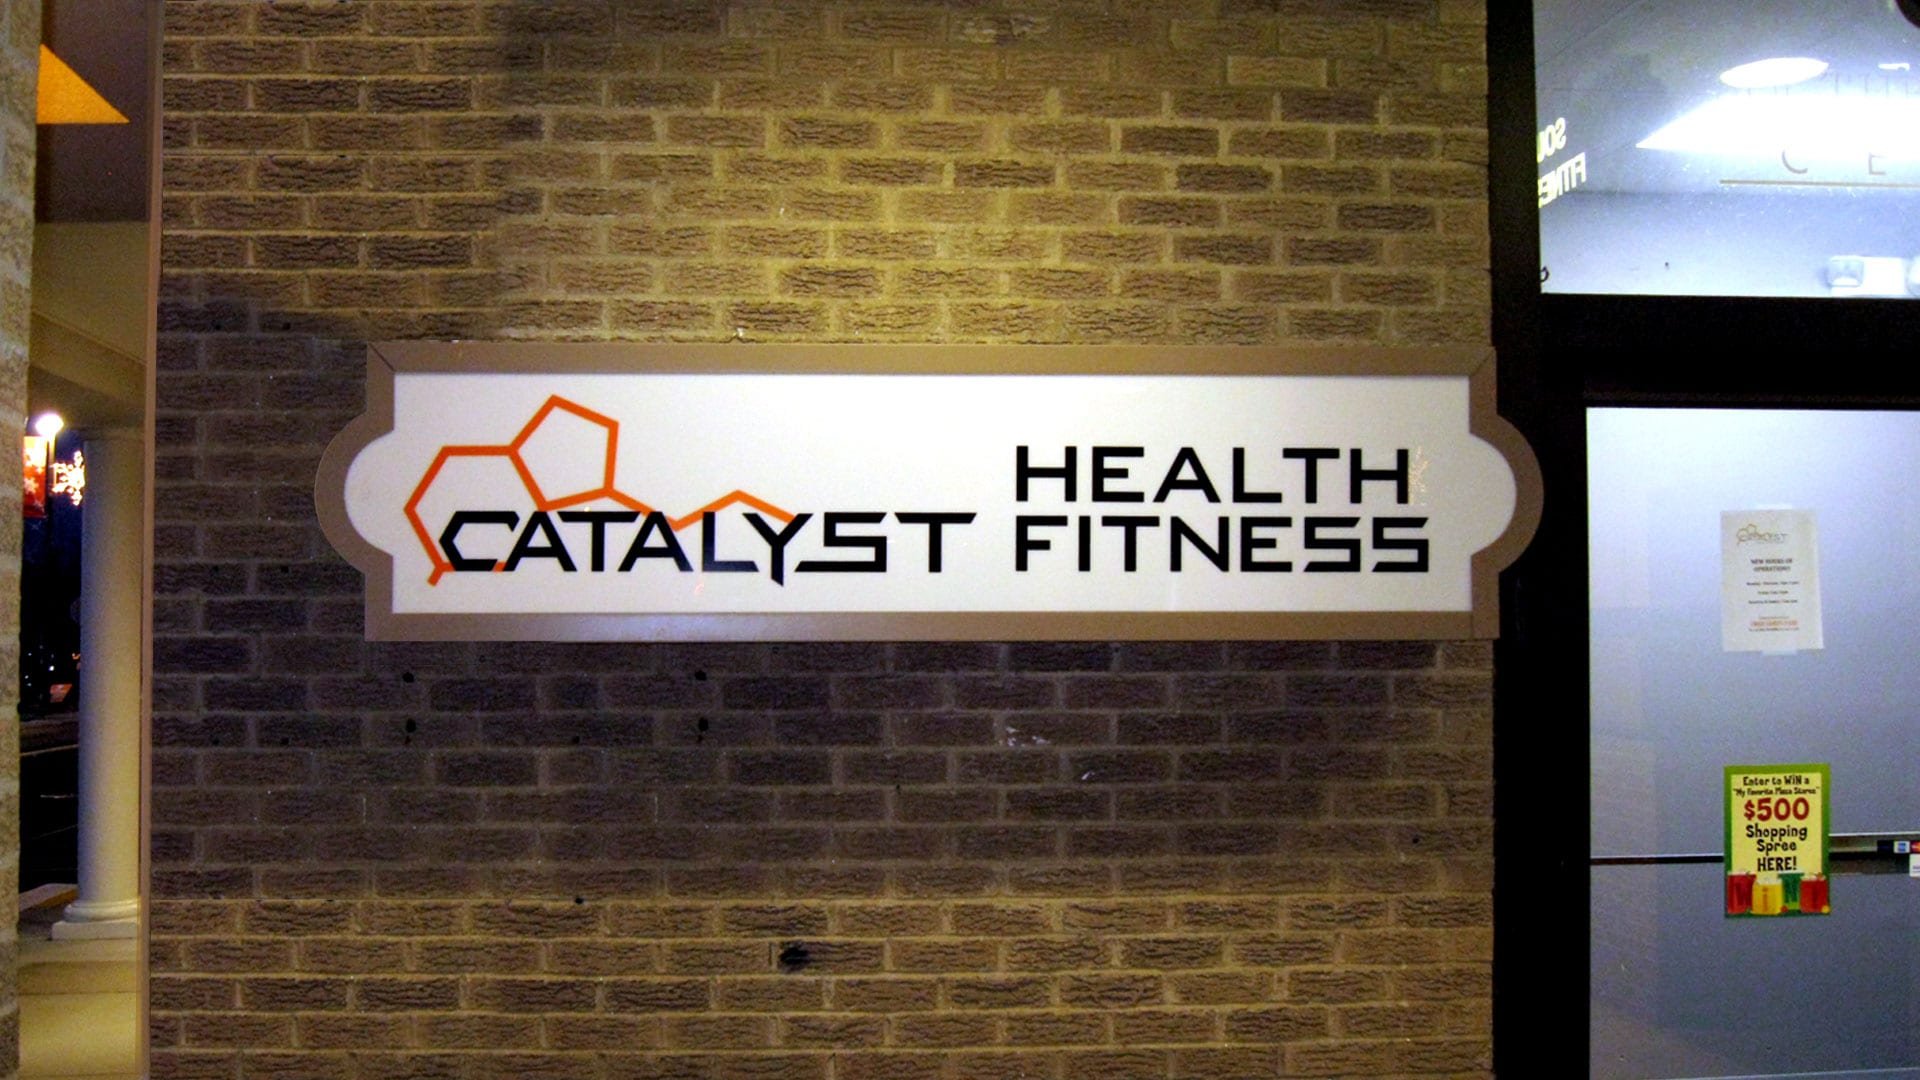 Lighted Cabinet - Catalyst Health and Fitness